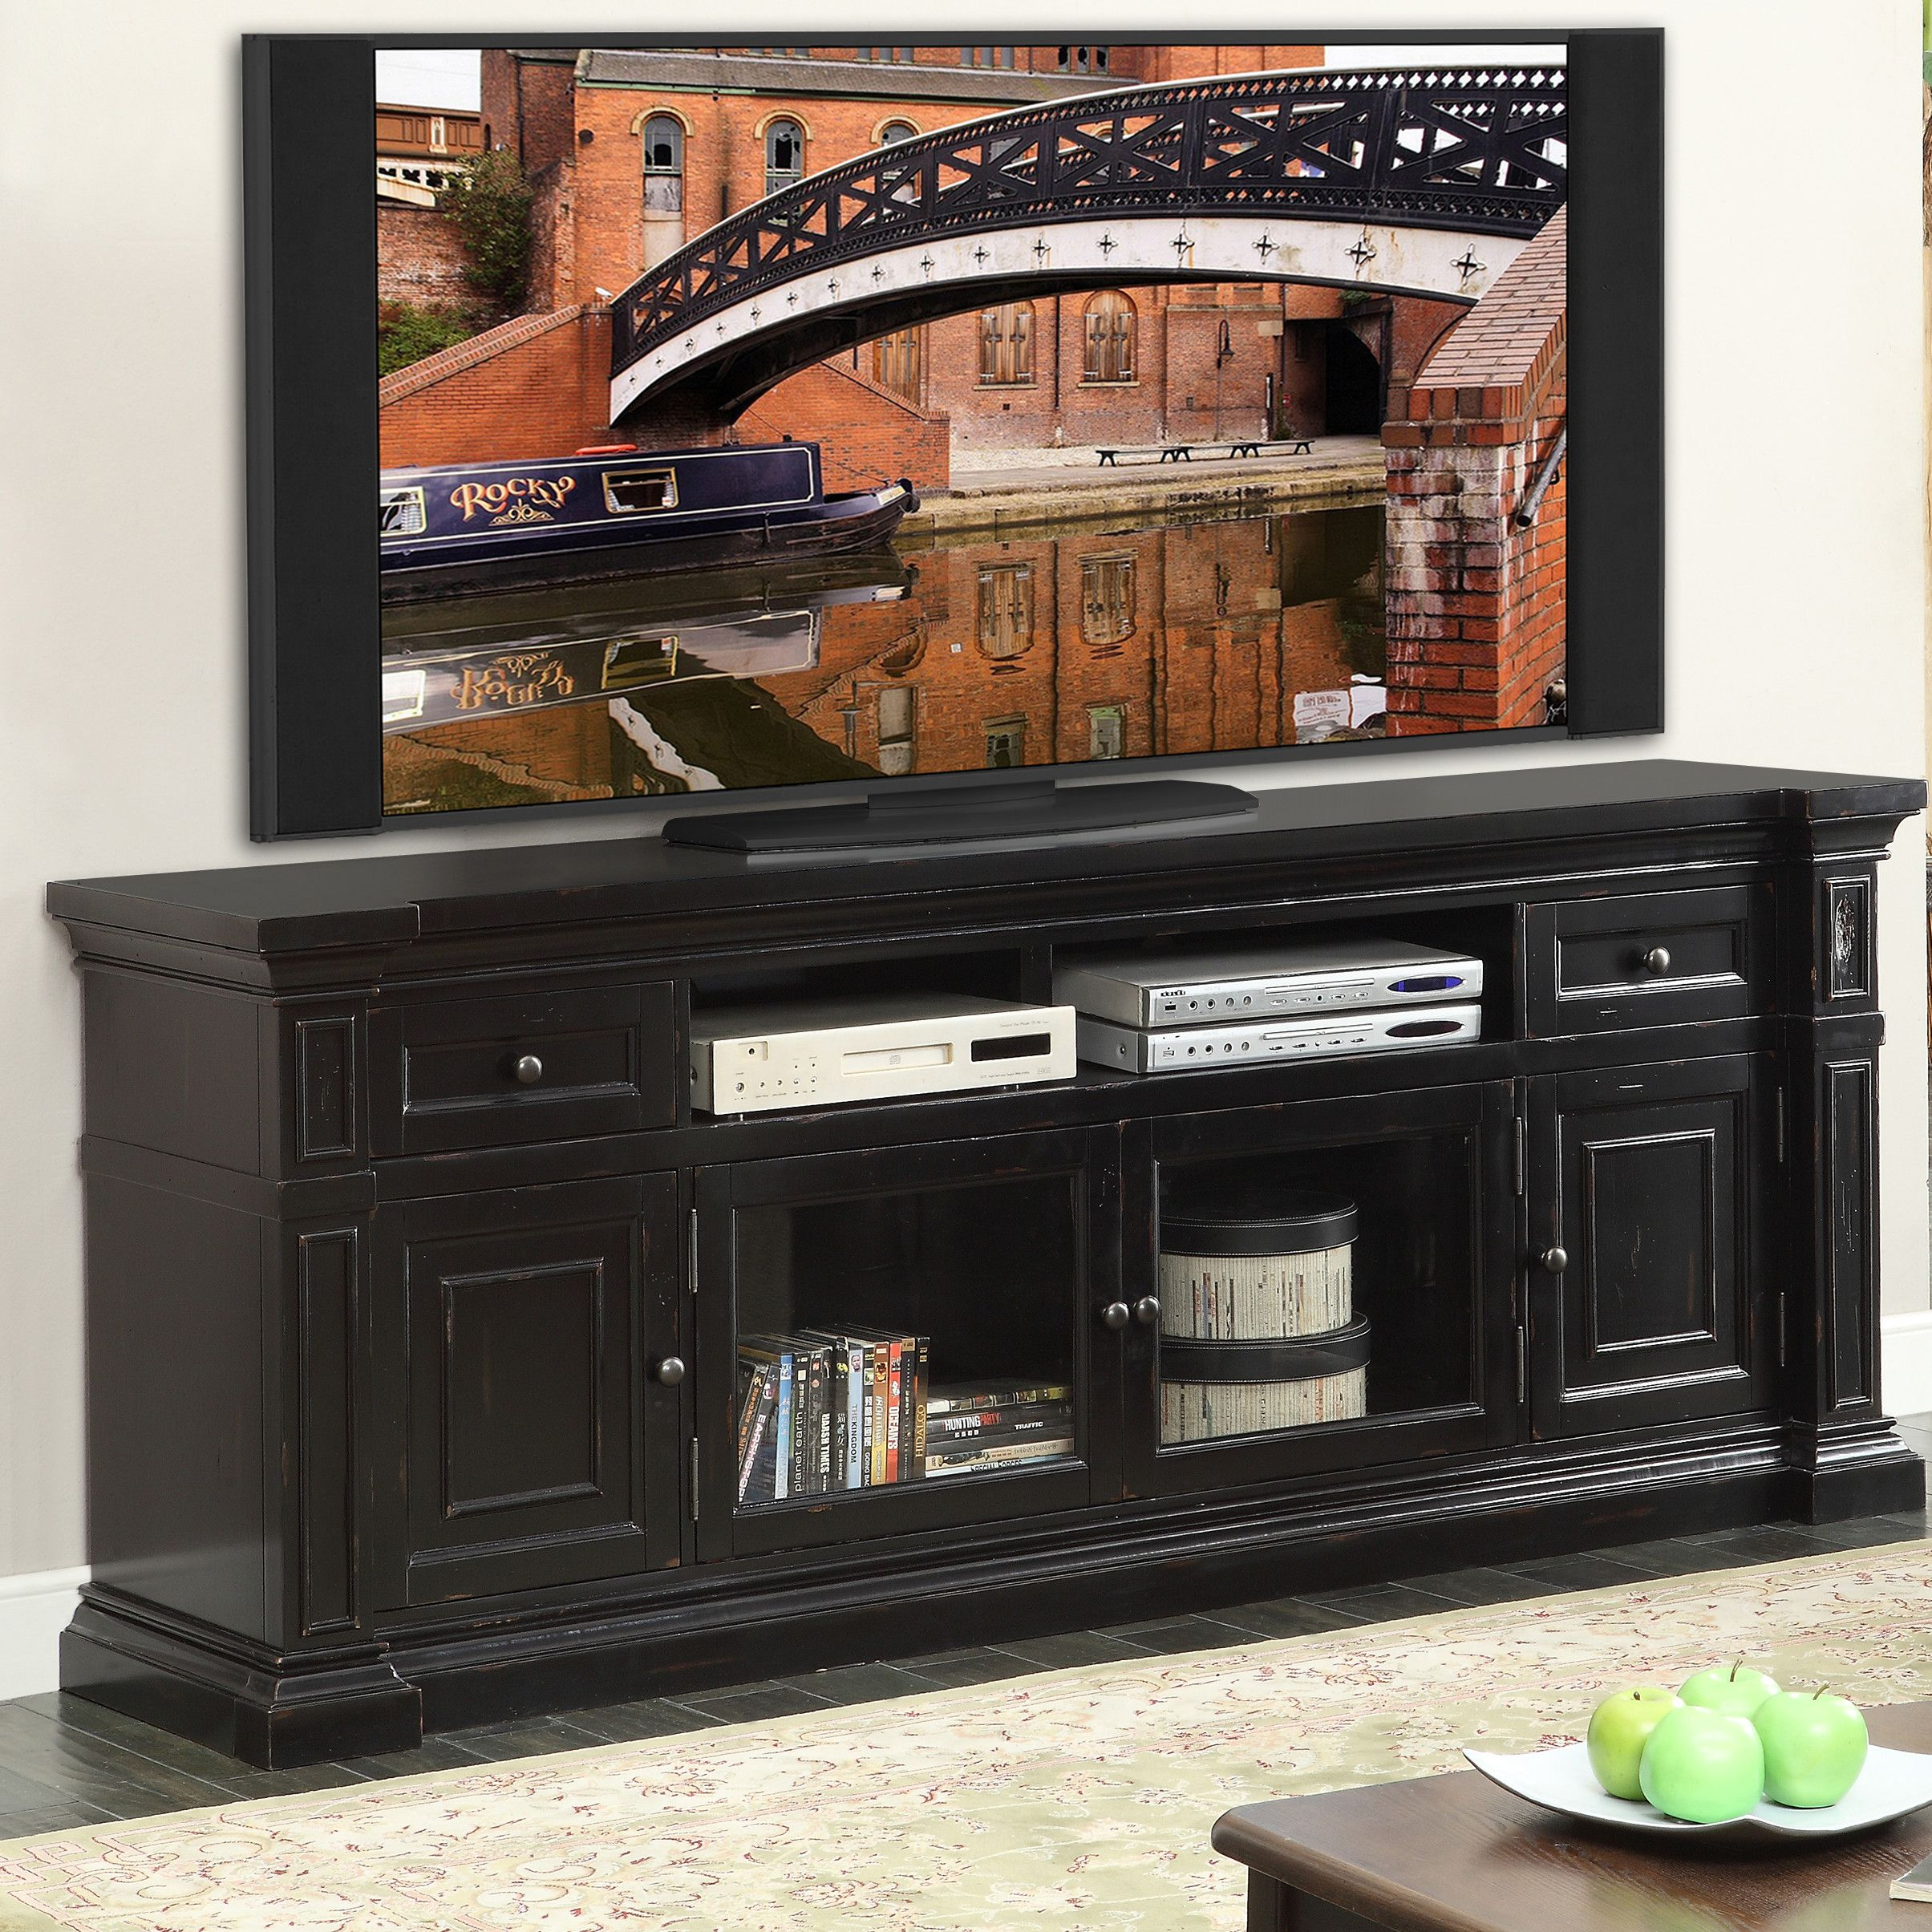 Darby Home Co Reg Stotts Tv Stand Tv Stand Furniture Rustic